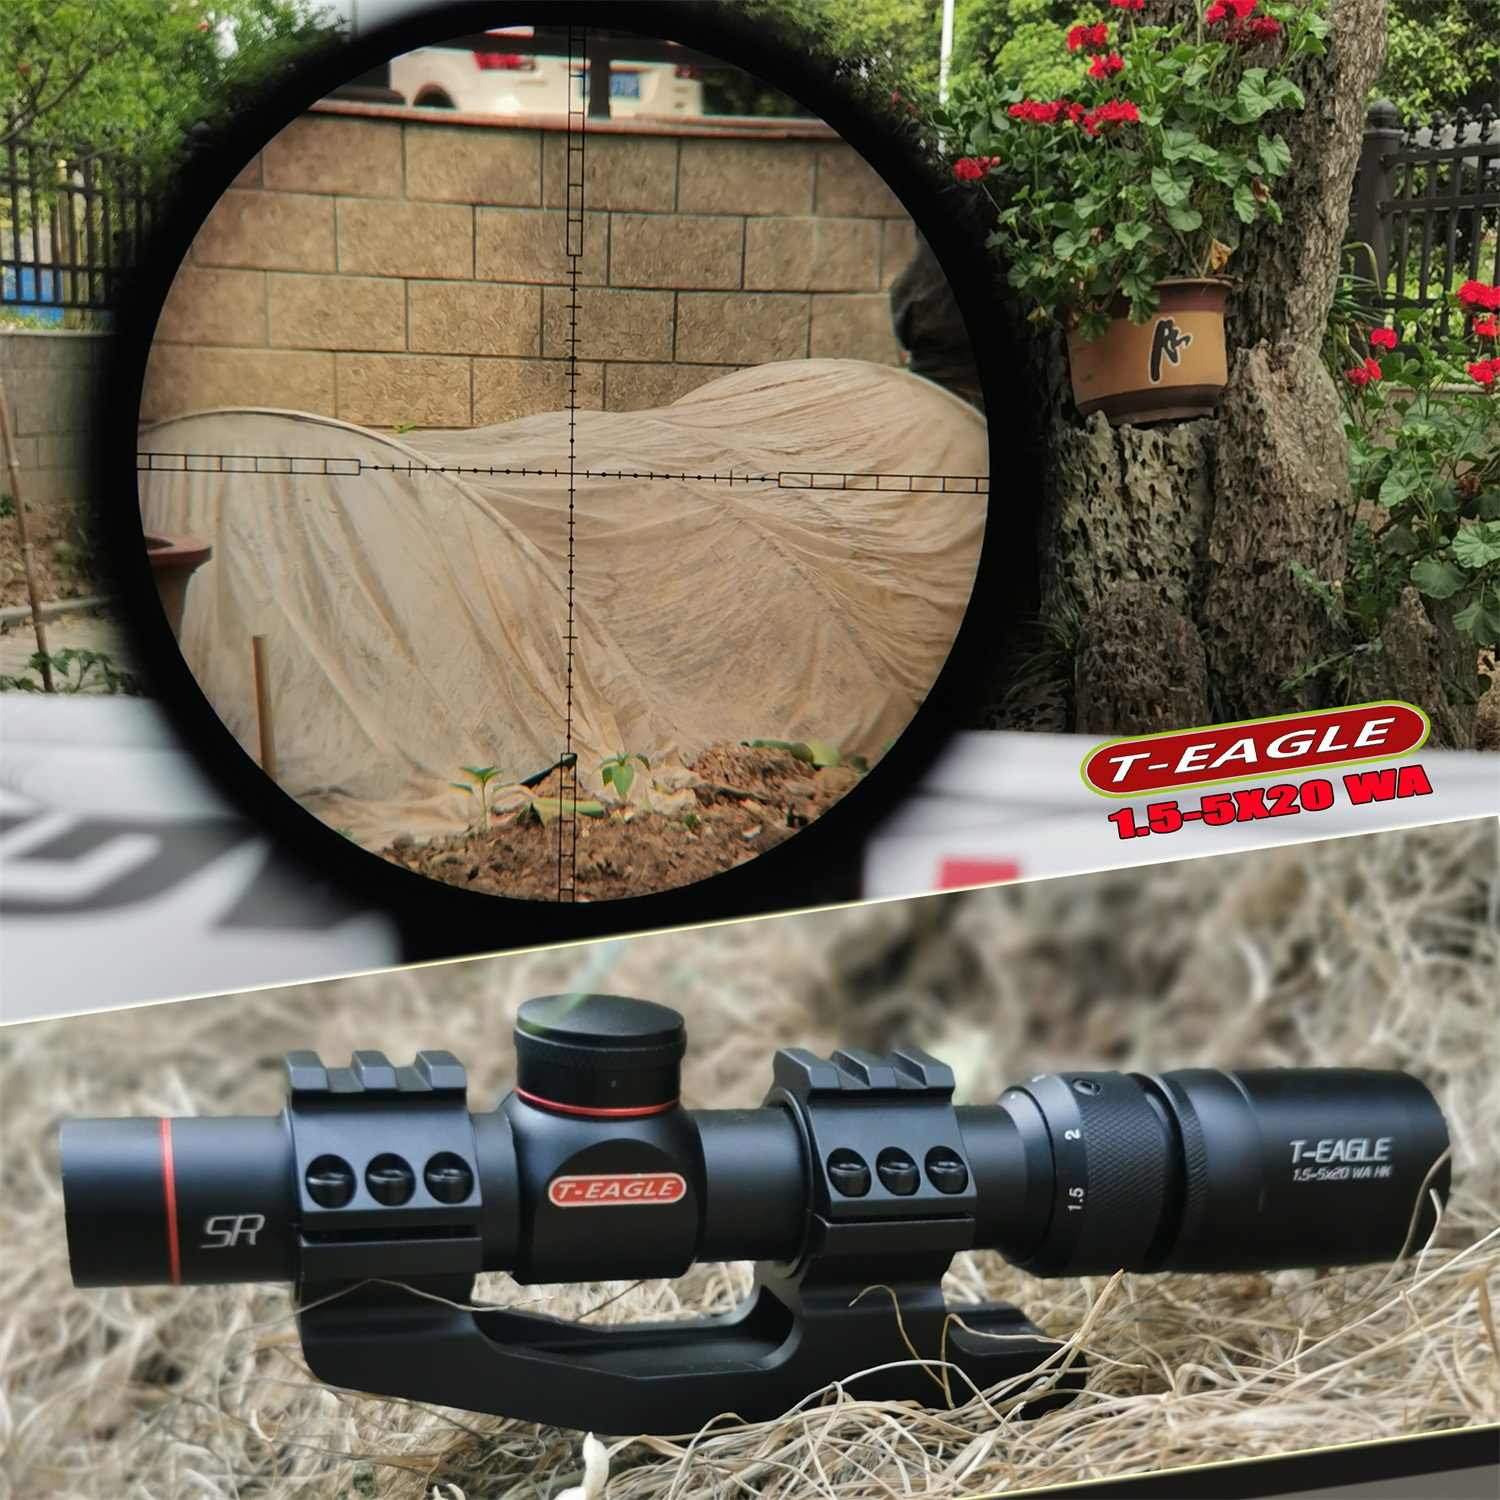 טינשיר R1.5-5X20 טקטי בסיס צלף ציד אופטיקה Riflescopes airsoftsports הלם הוכחת סופר ראיית רובה היקף sight